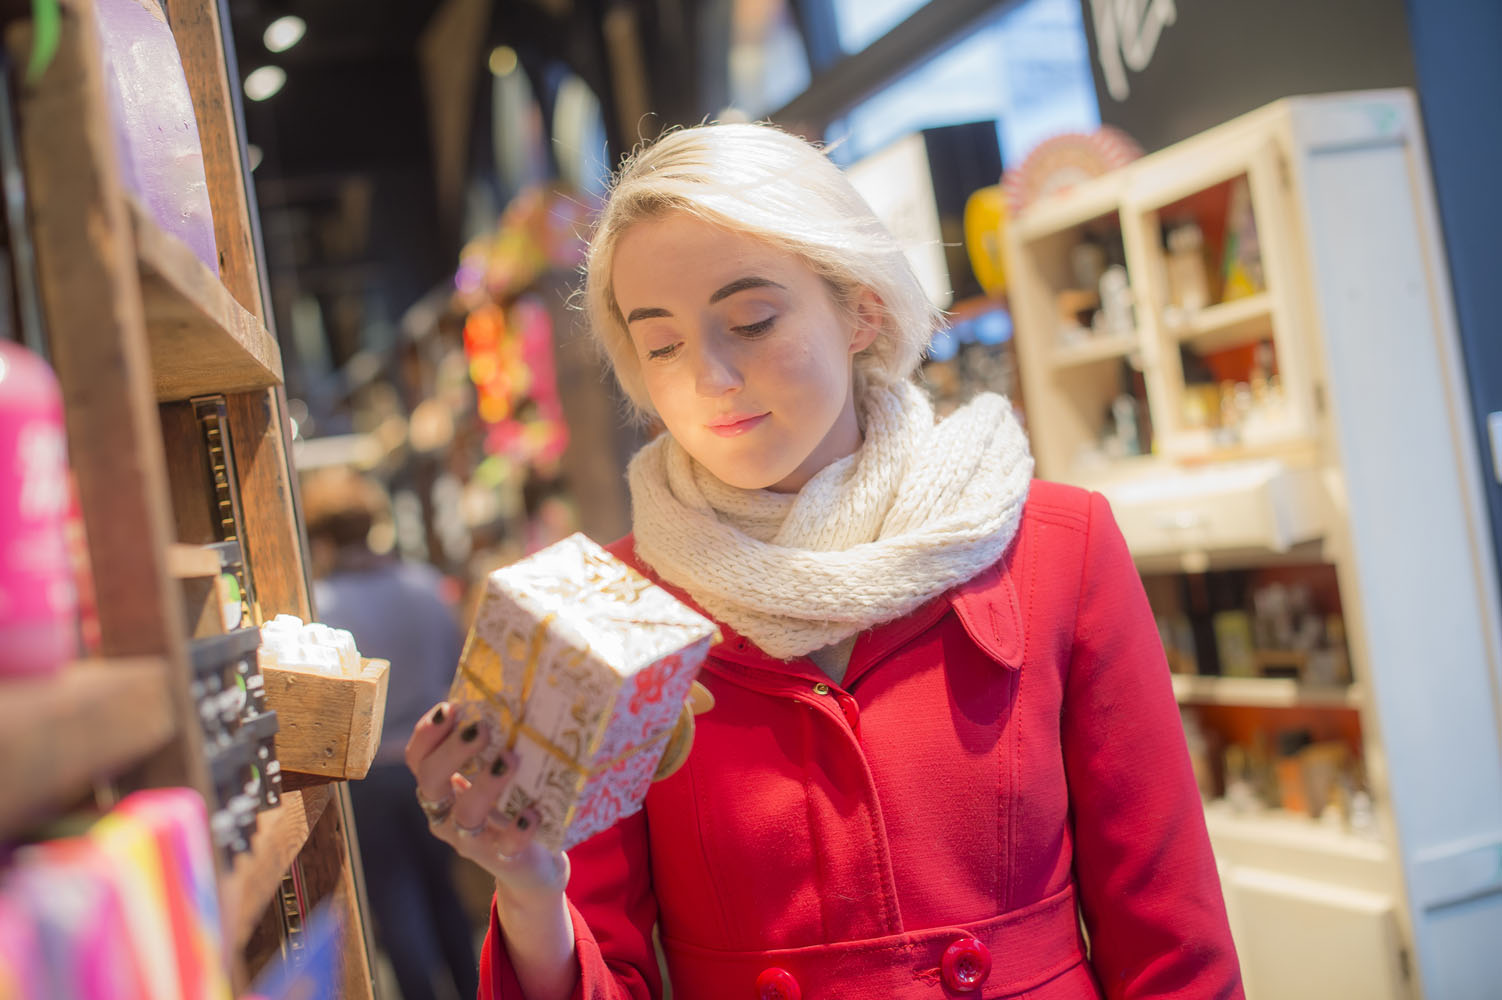 A young lady examines a Christmas gift in Lush, Bournemouth.